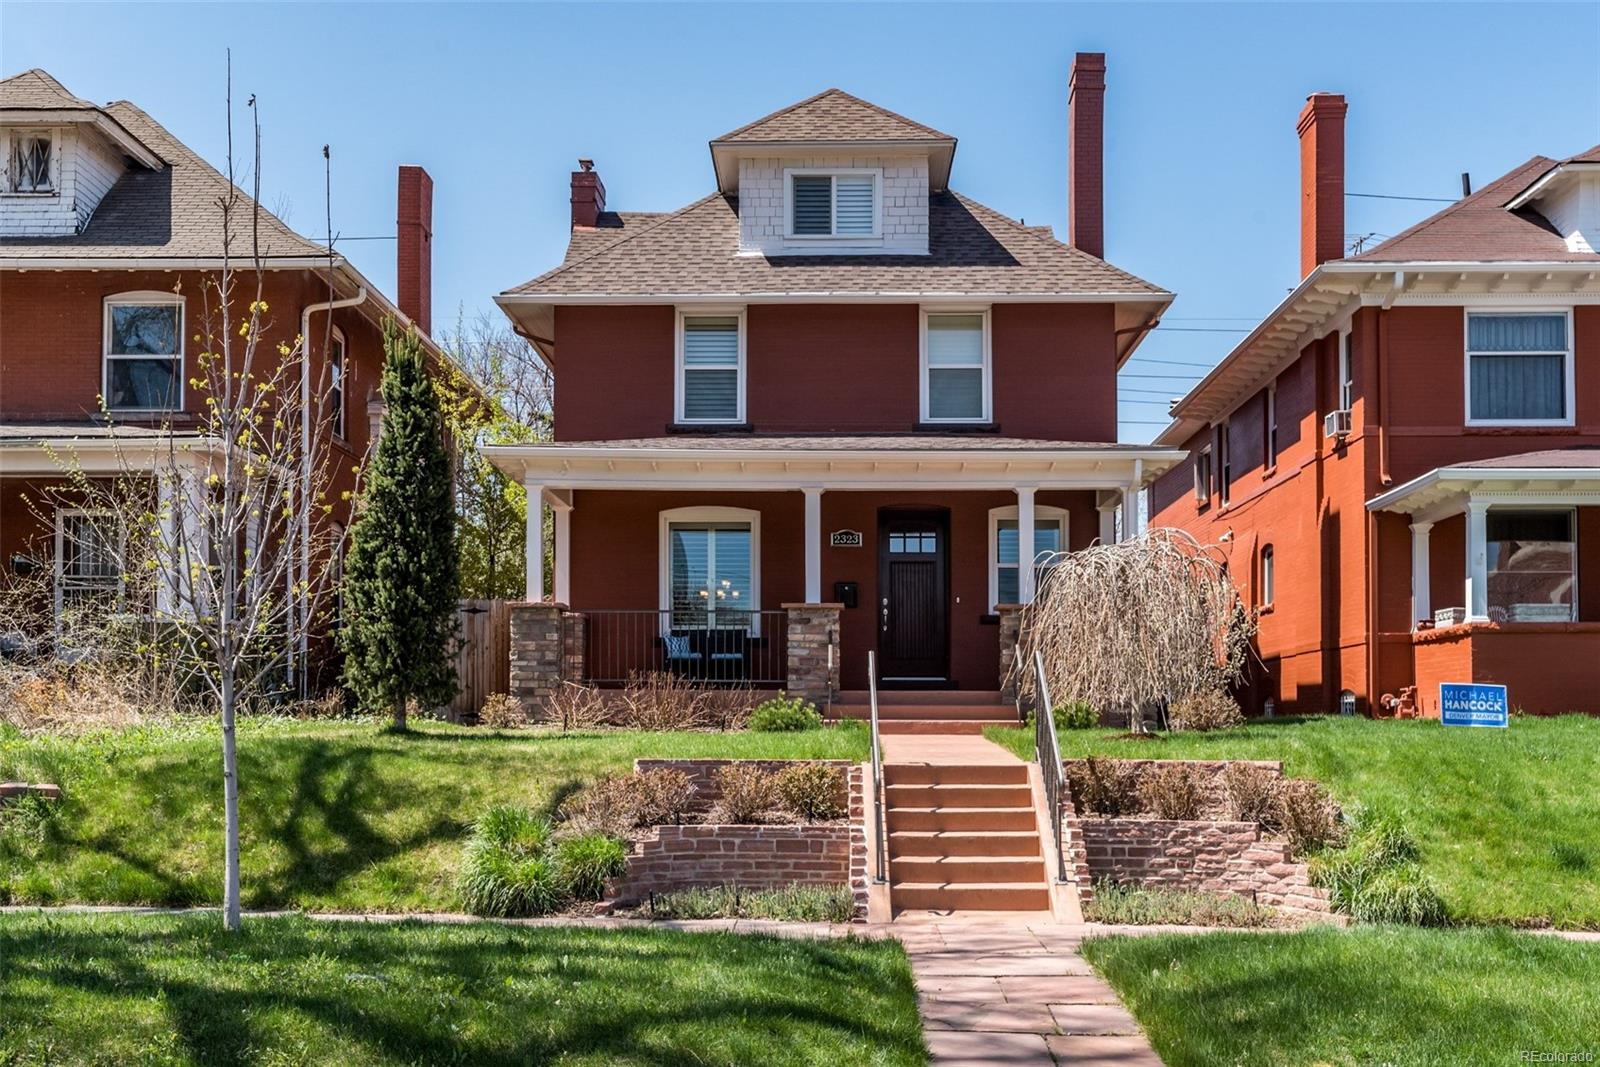 WELCOME TO YOUR STUNNING NEW HOME AT 2323 N. GAYLORD STREET!